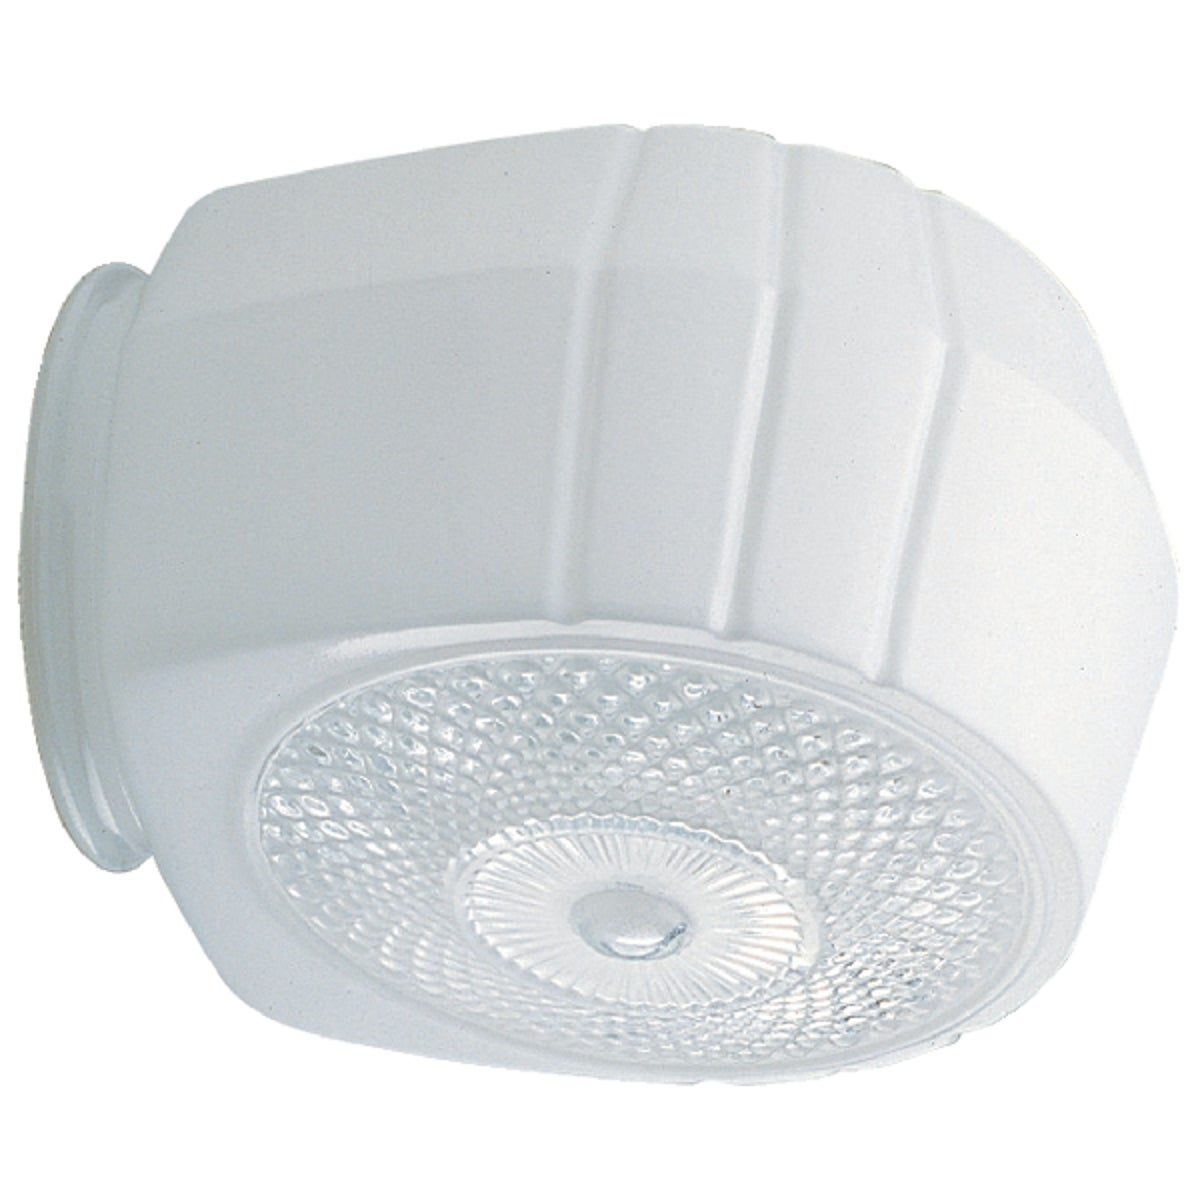 WHITE CERAMIC SHADE - 85604 by Westinghouse Lightng